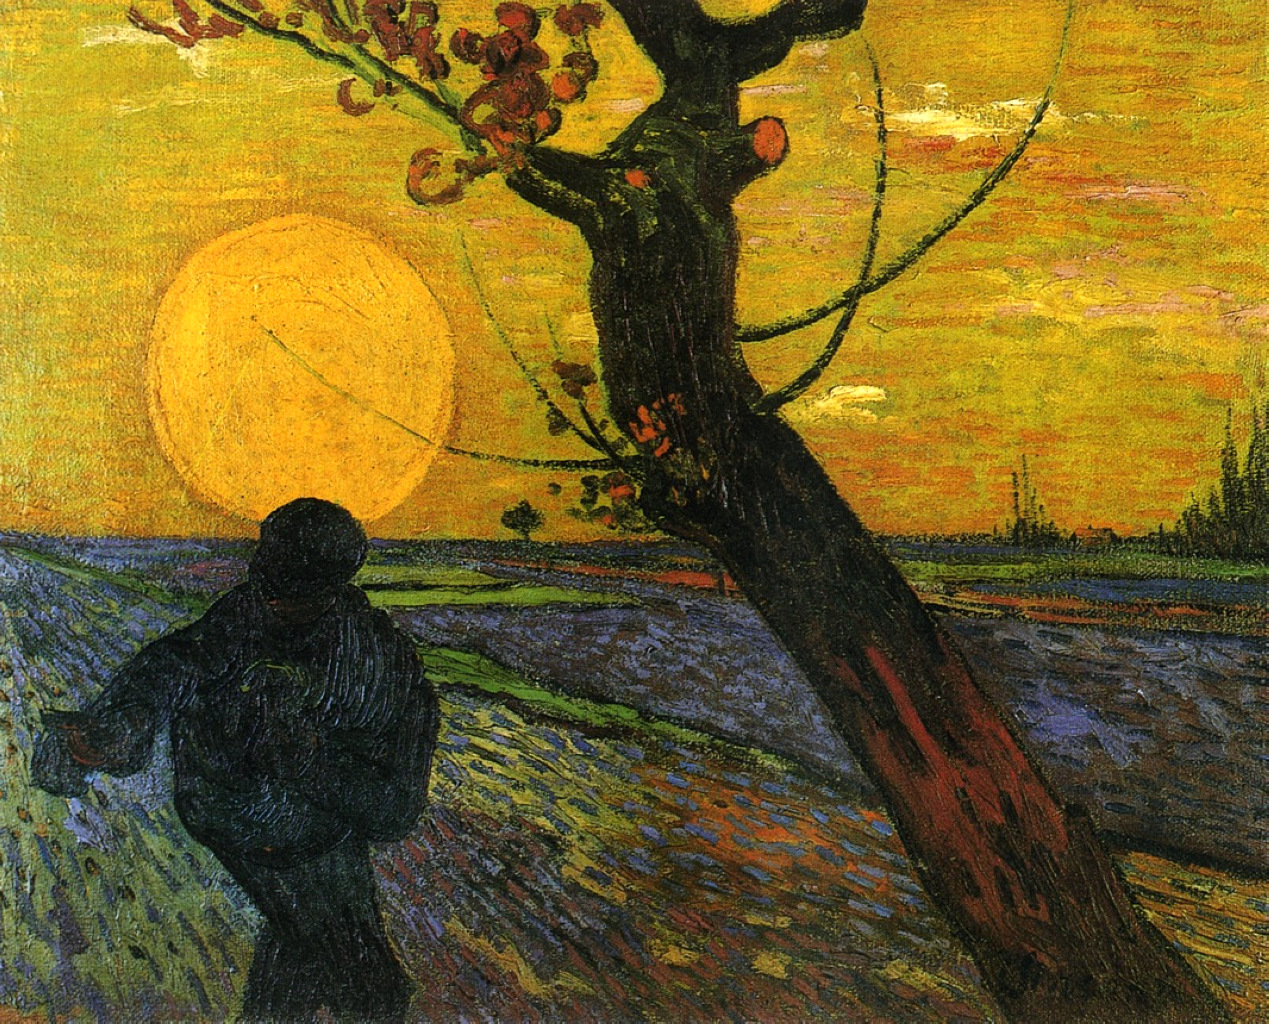 sower-with-setting-sun-1888-3.jpg